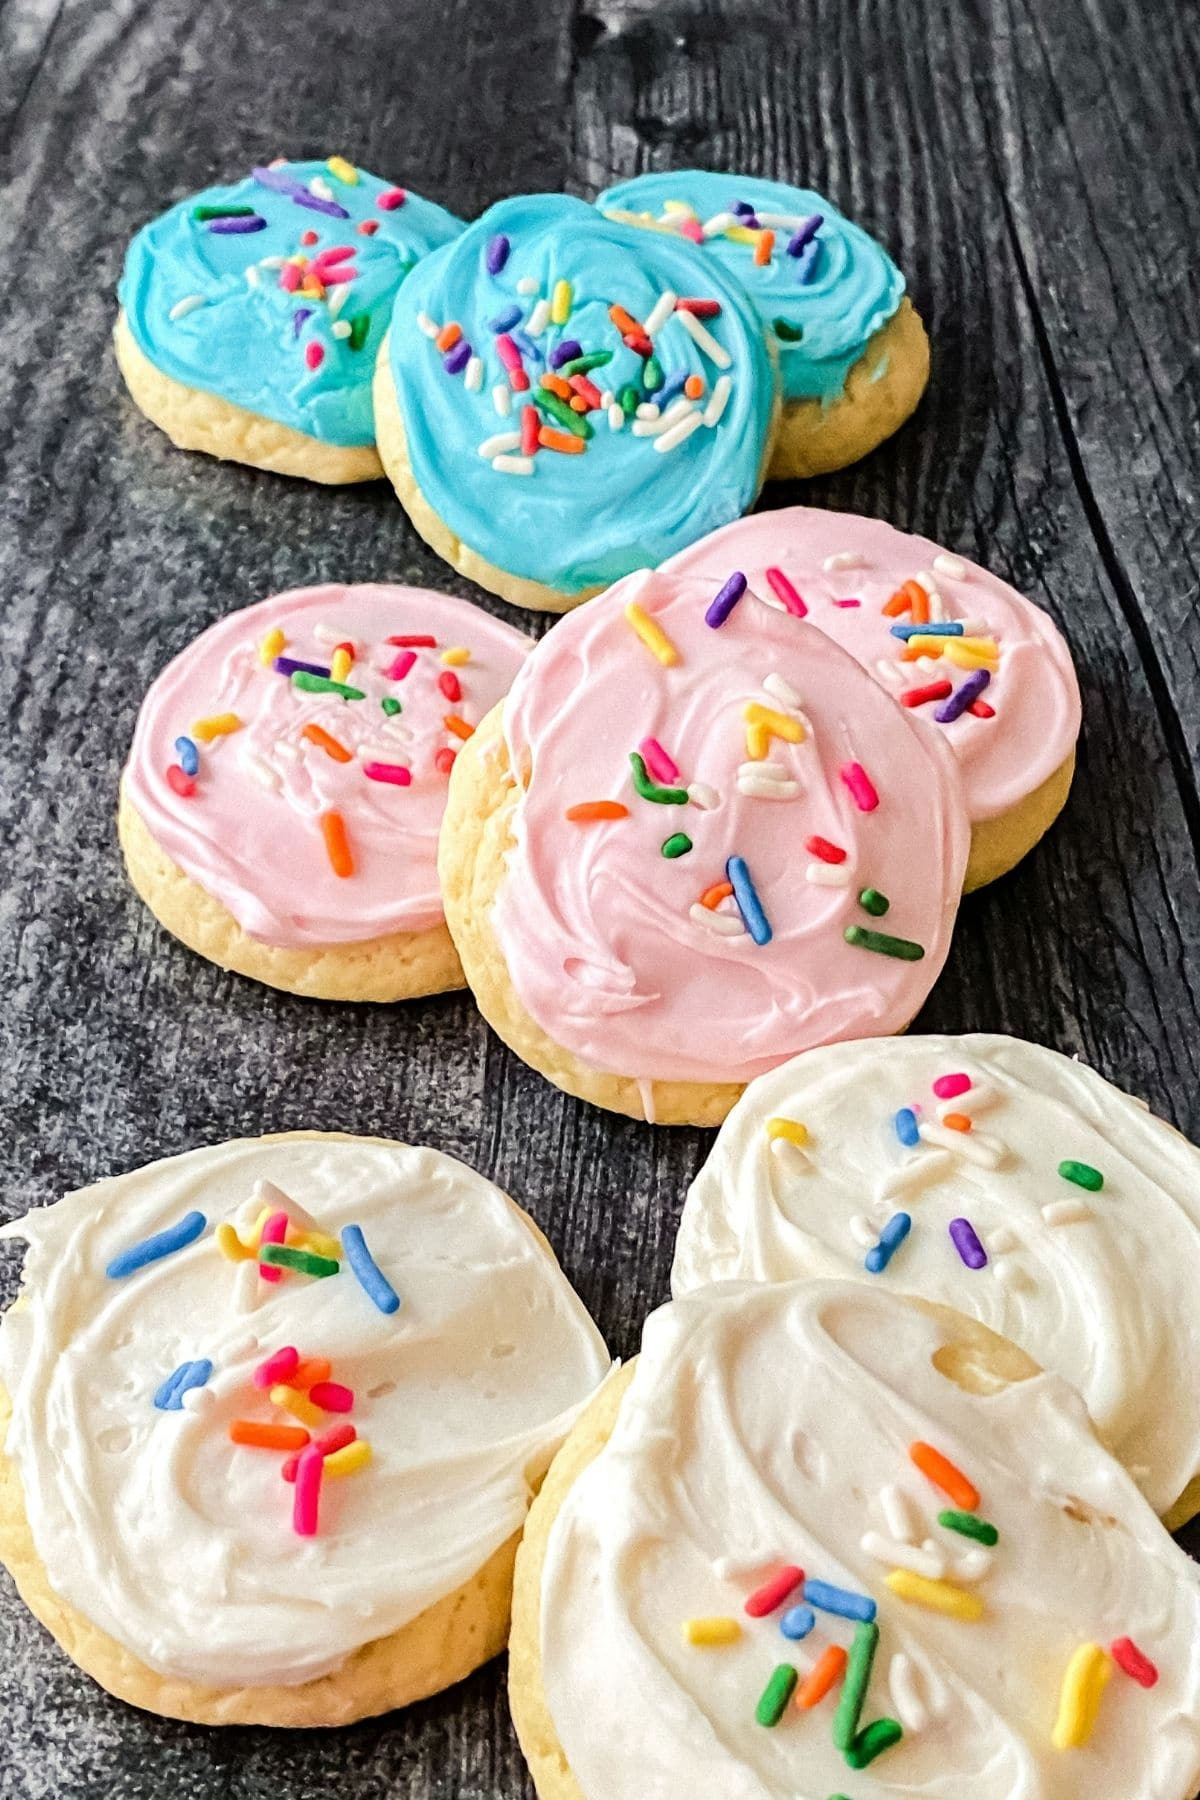 Blue pink and white frosting on cookies laying on gray black table